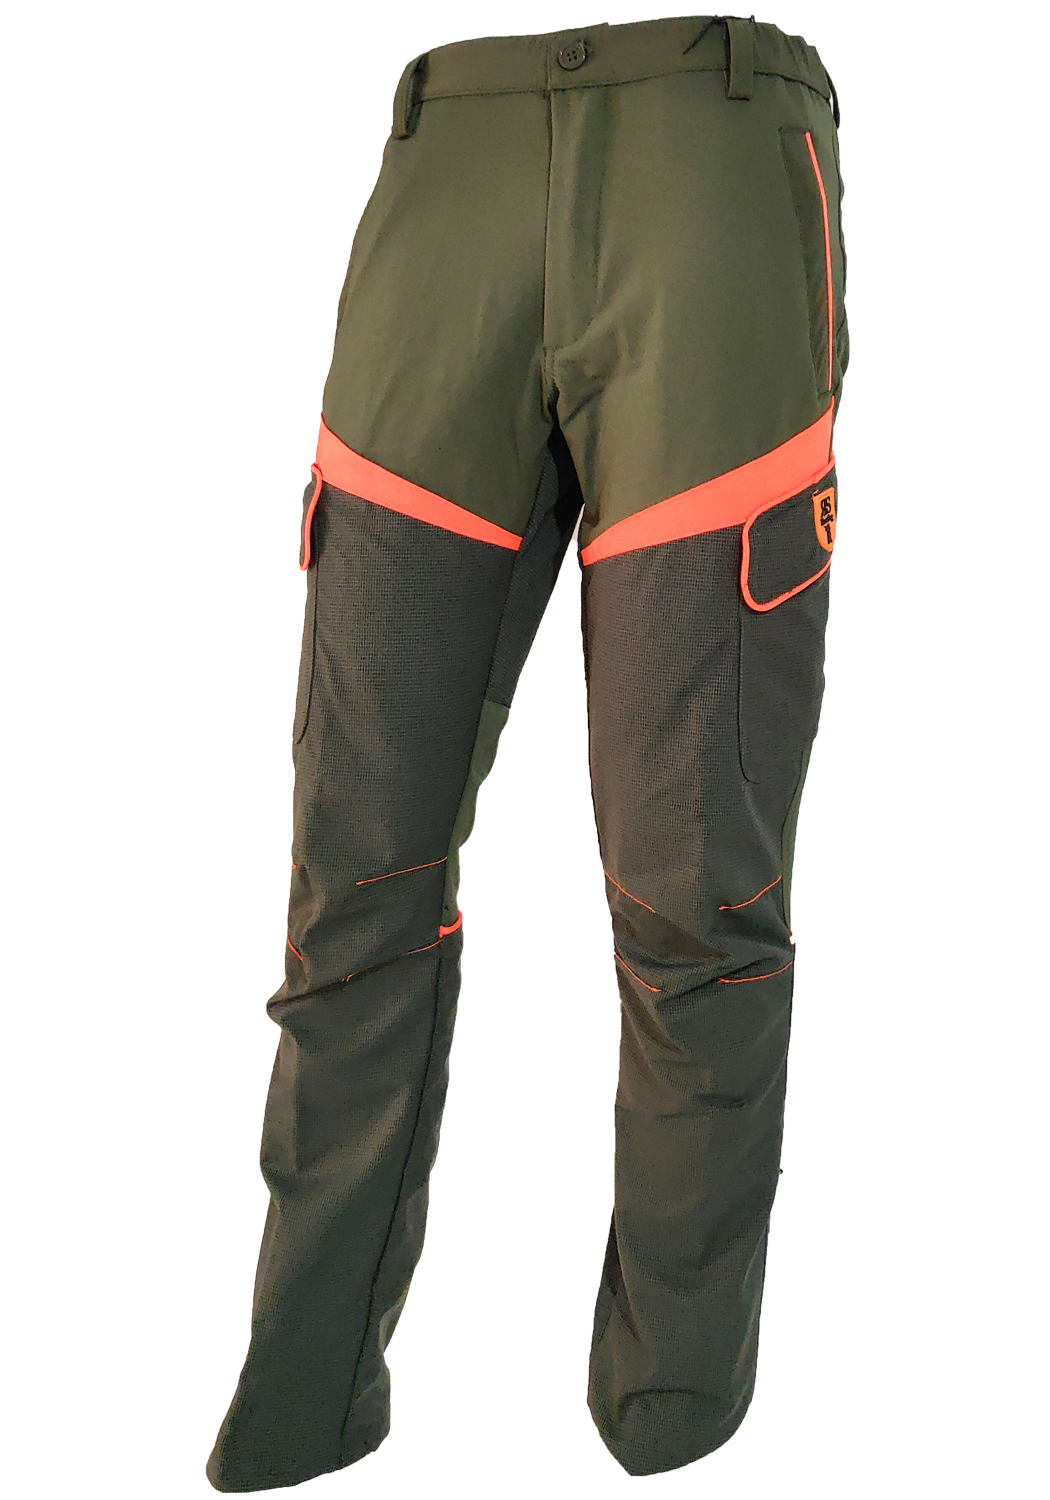 Trousers stretch slim swaps orange kevlar waterproof man